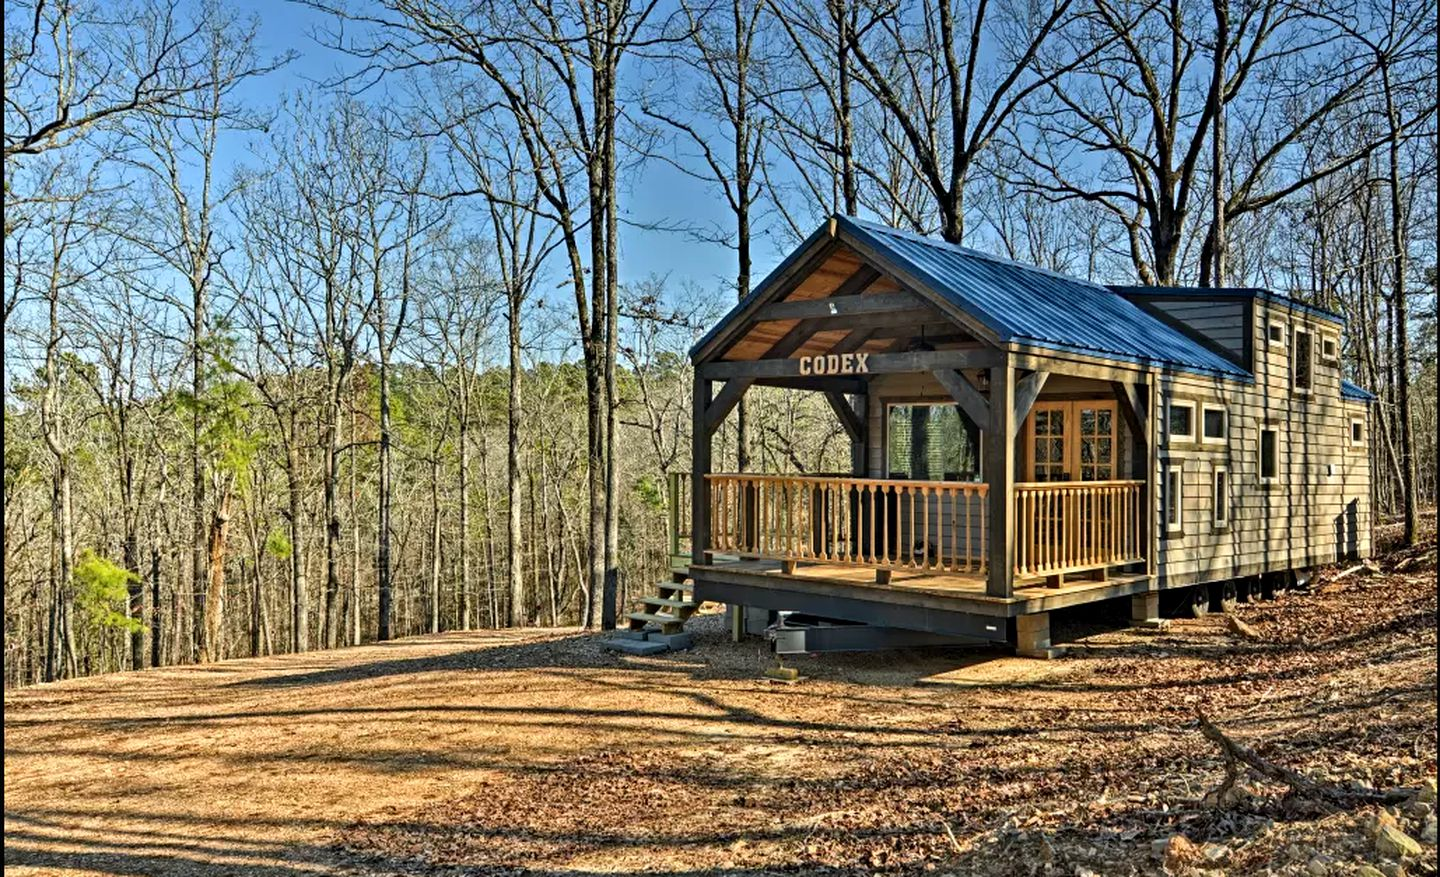 Tiny house cabin rental for secluded weekend getaway in Murfreesboro, Arkansas.